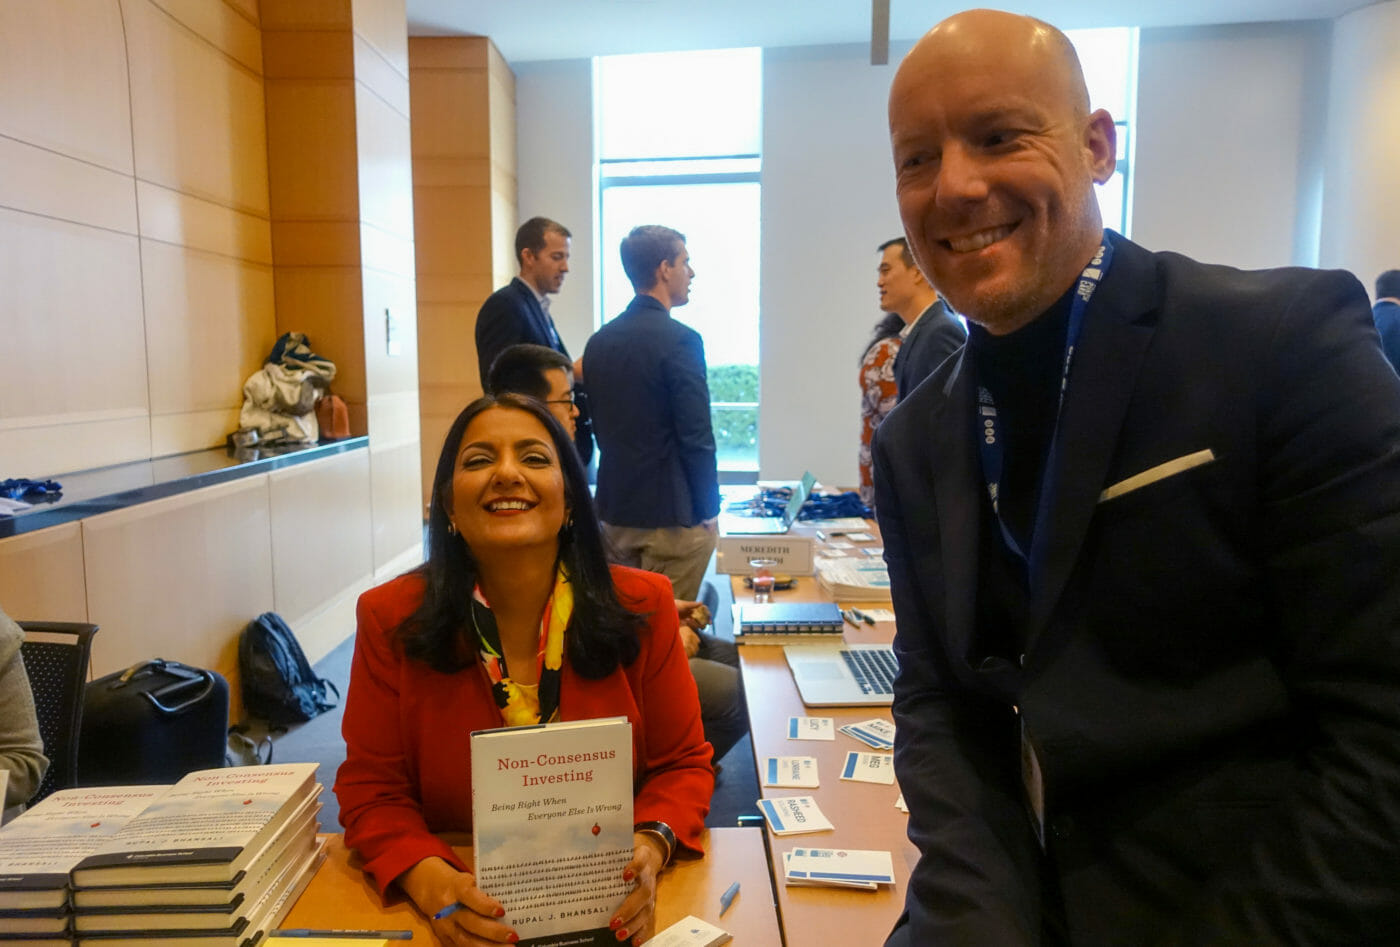 """Swem Lorenz and Rupal Bhansali at the book table with the book """"Non-consensus investing"""""""